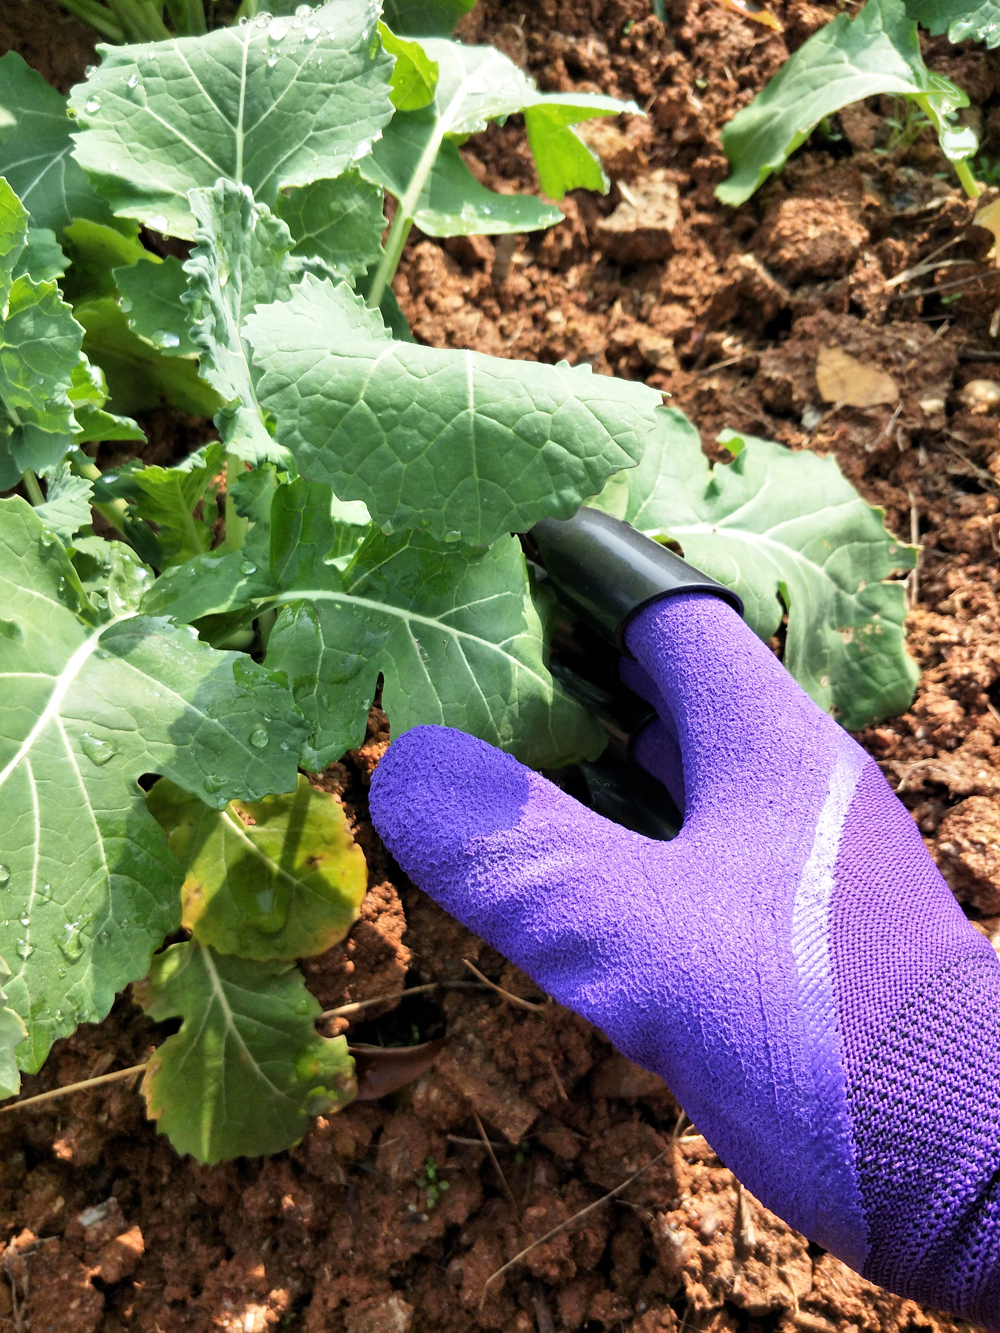 Garden Gloves 4 Hand Claw Abs Plastic Rubber Gloves Quick Excavation Plant Waterproof Insulation Home Living Essential Gadgets Reputation First Garden Tools